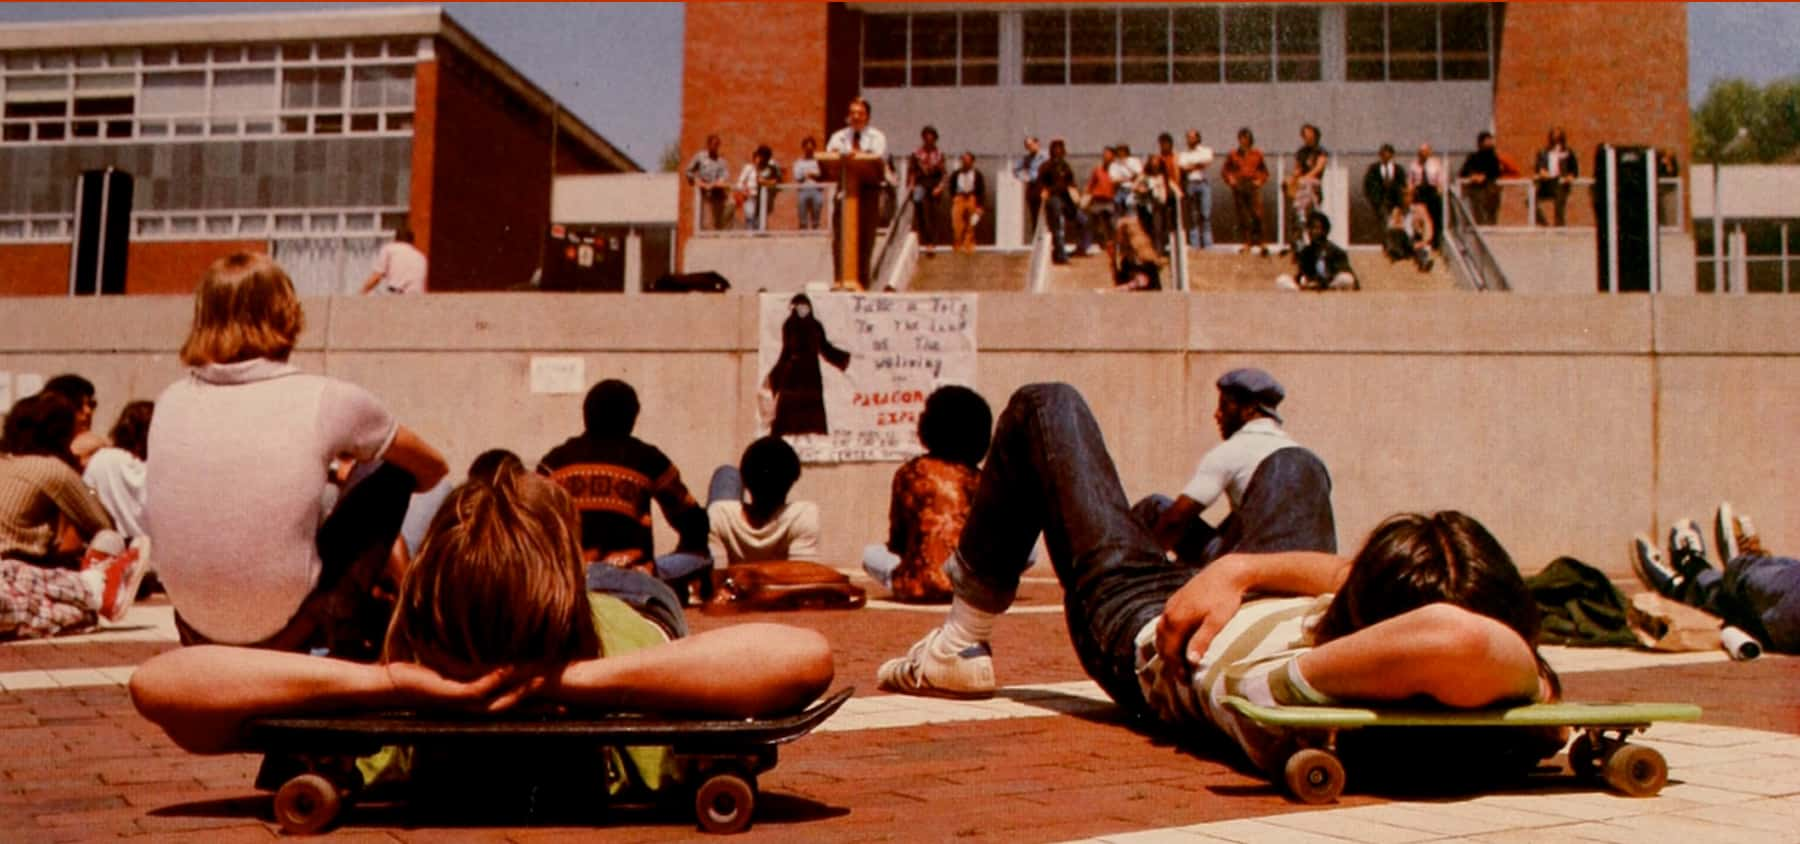 Students lie on skateboards in the brickyard while listening to a speaker